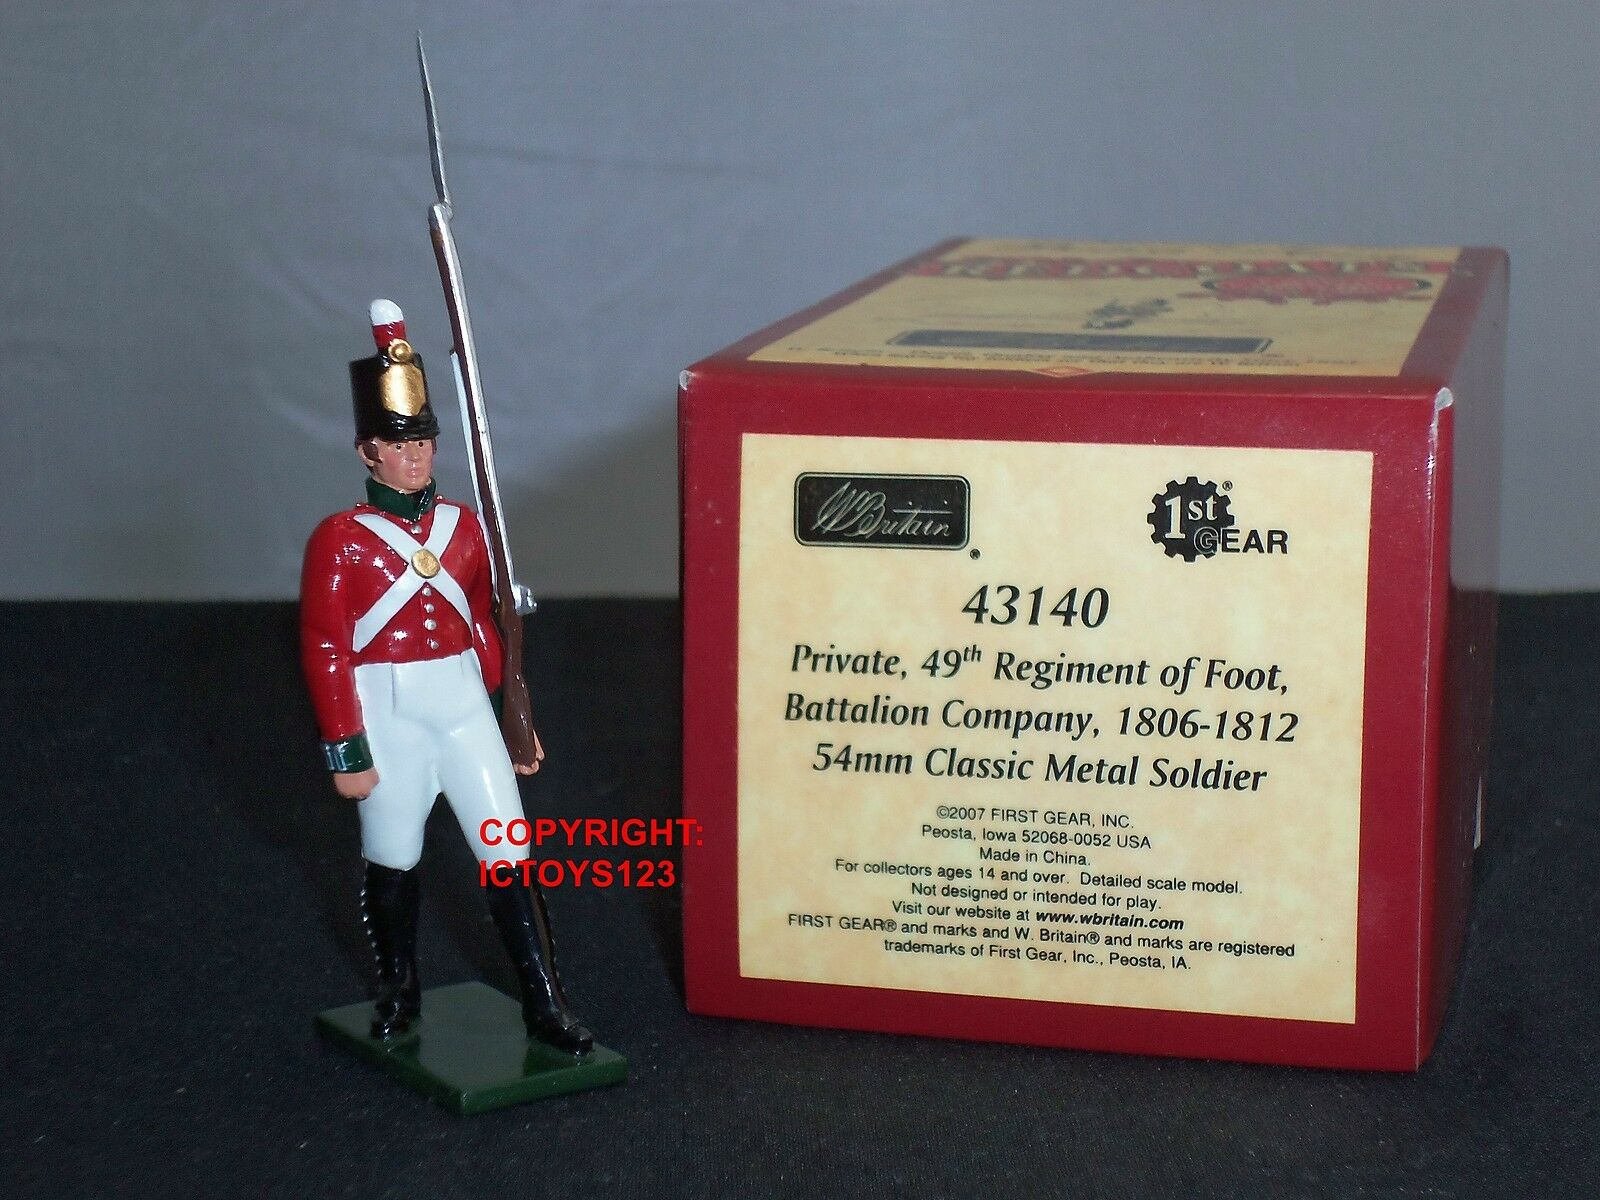 BRITAINS 43140 49TH REGIMENT OF FOOT PRIVATE REDCOATS METAL TOY SOLDIER FIGURE